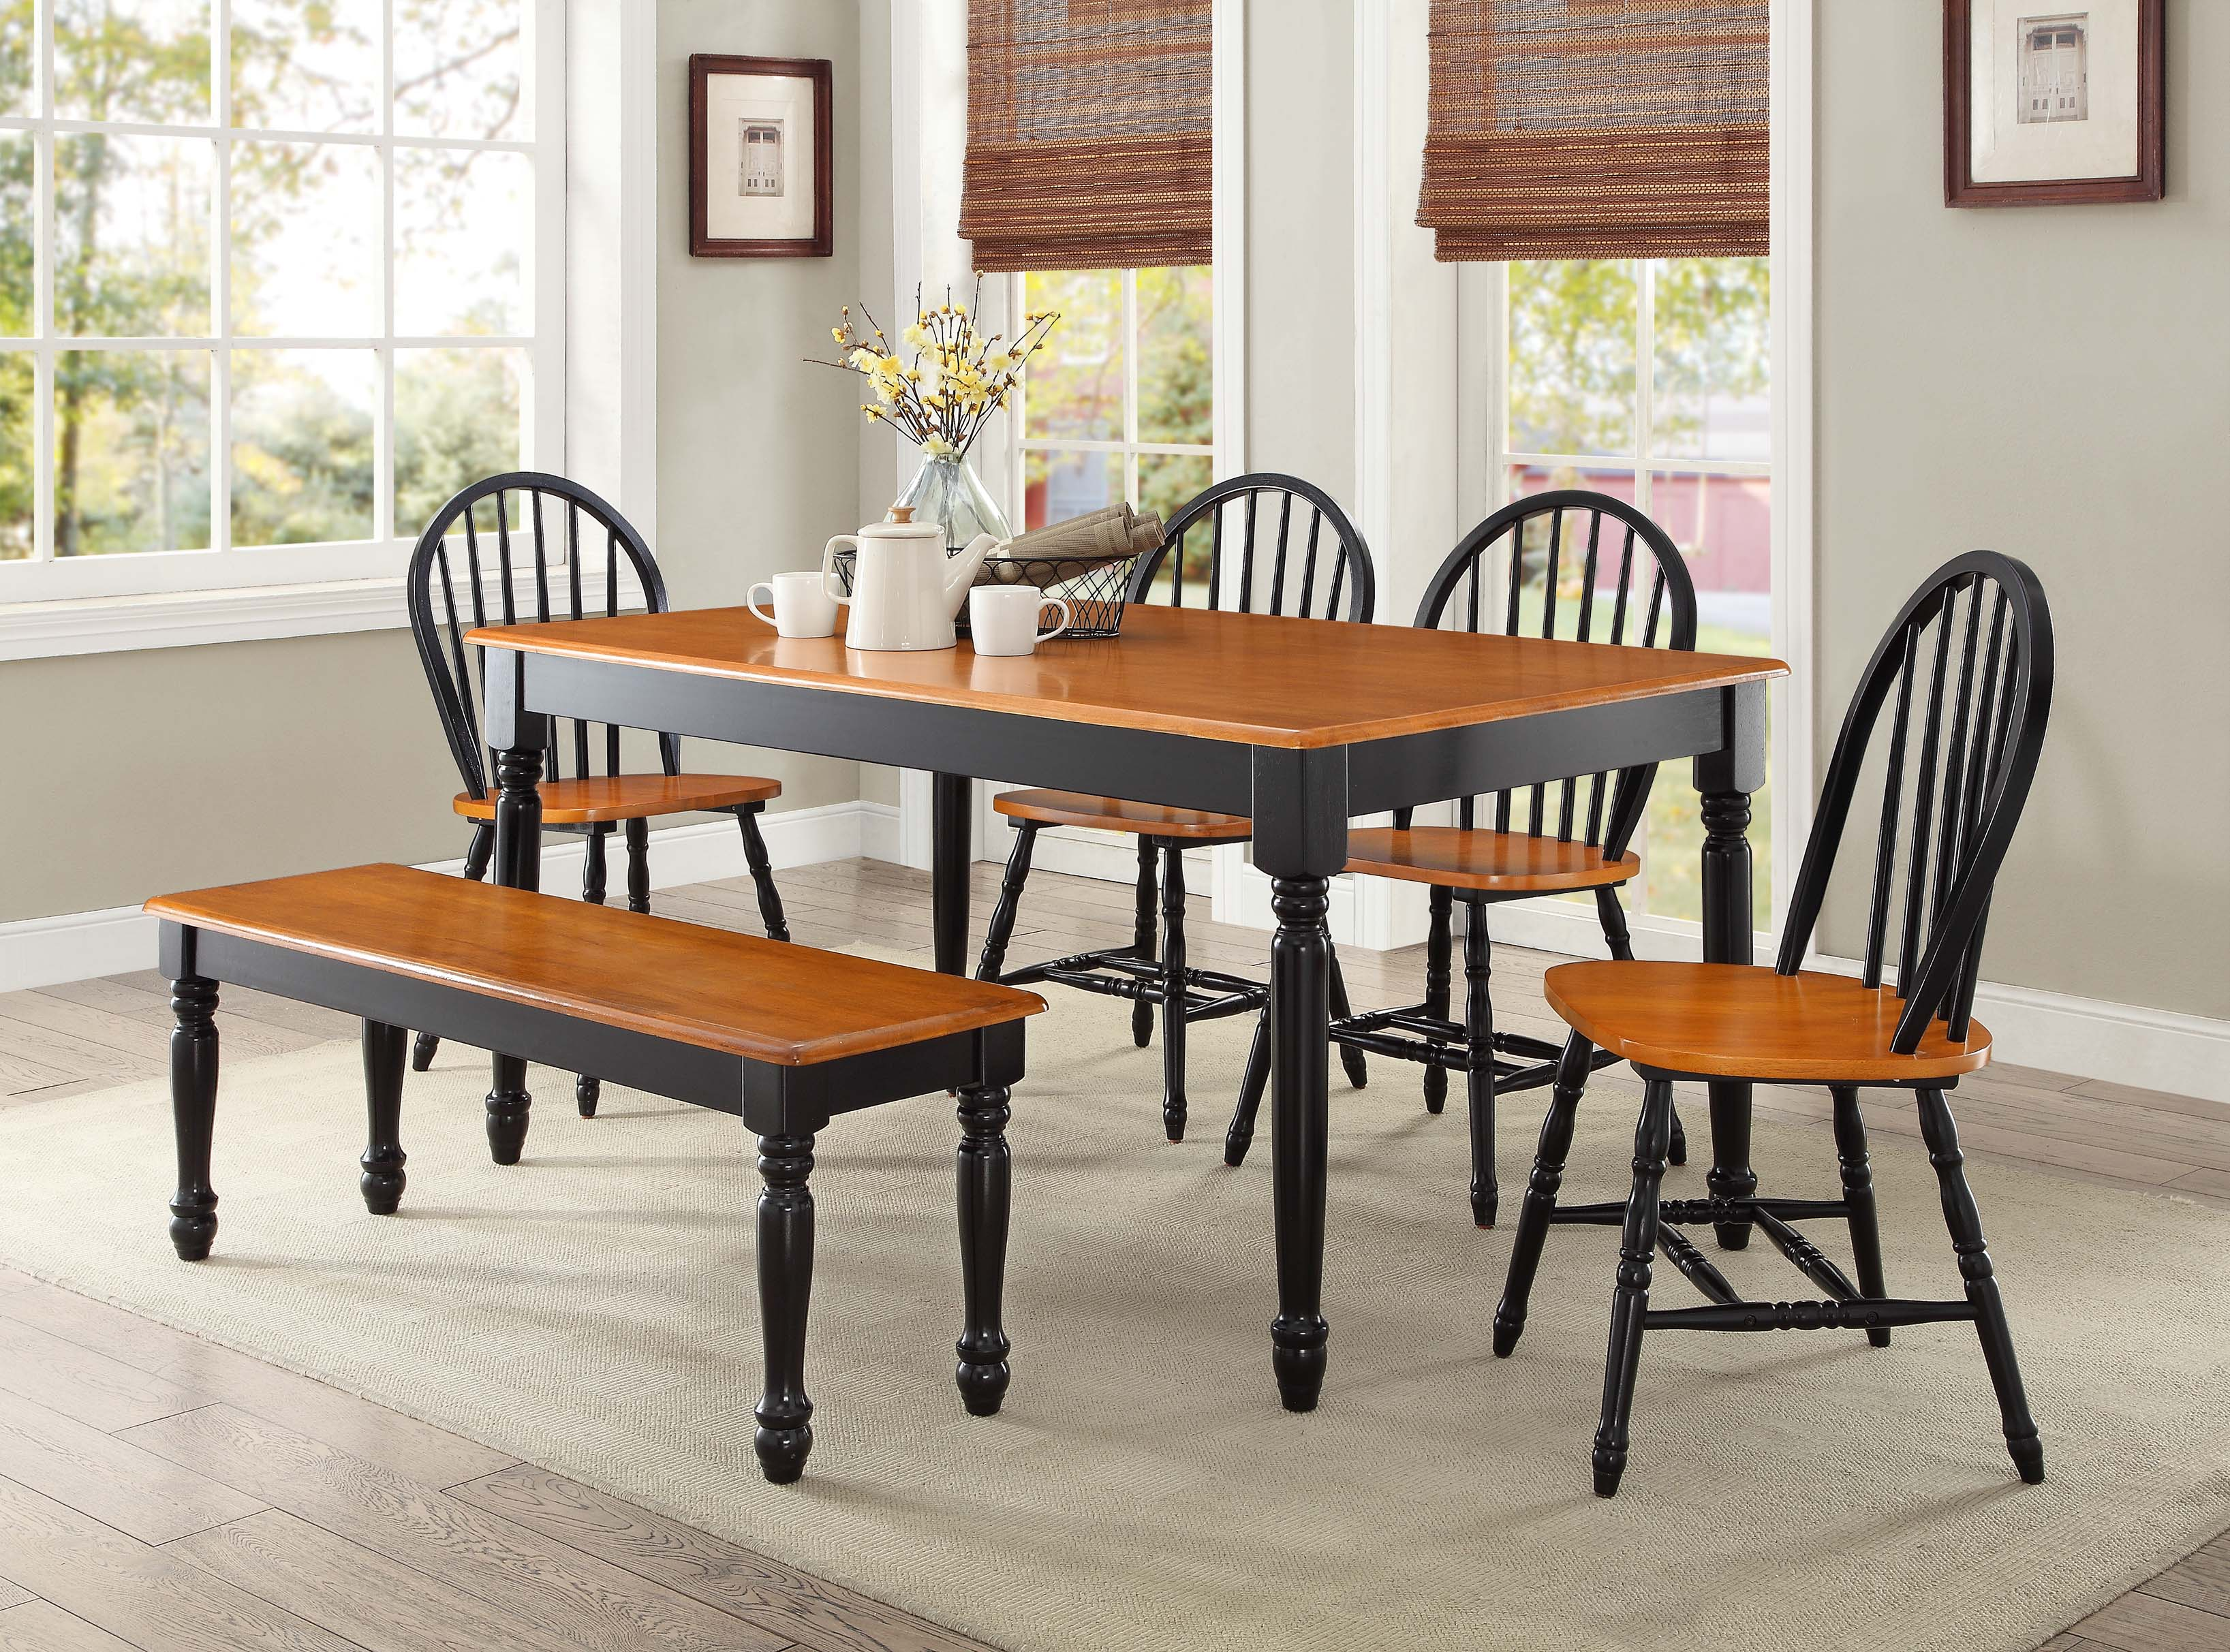 Better Homes And Gardens Autumn Lane Farmhouse 6 Piece Dining Set Bundle,  Black And Oak   Walmart.com